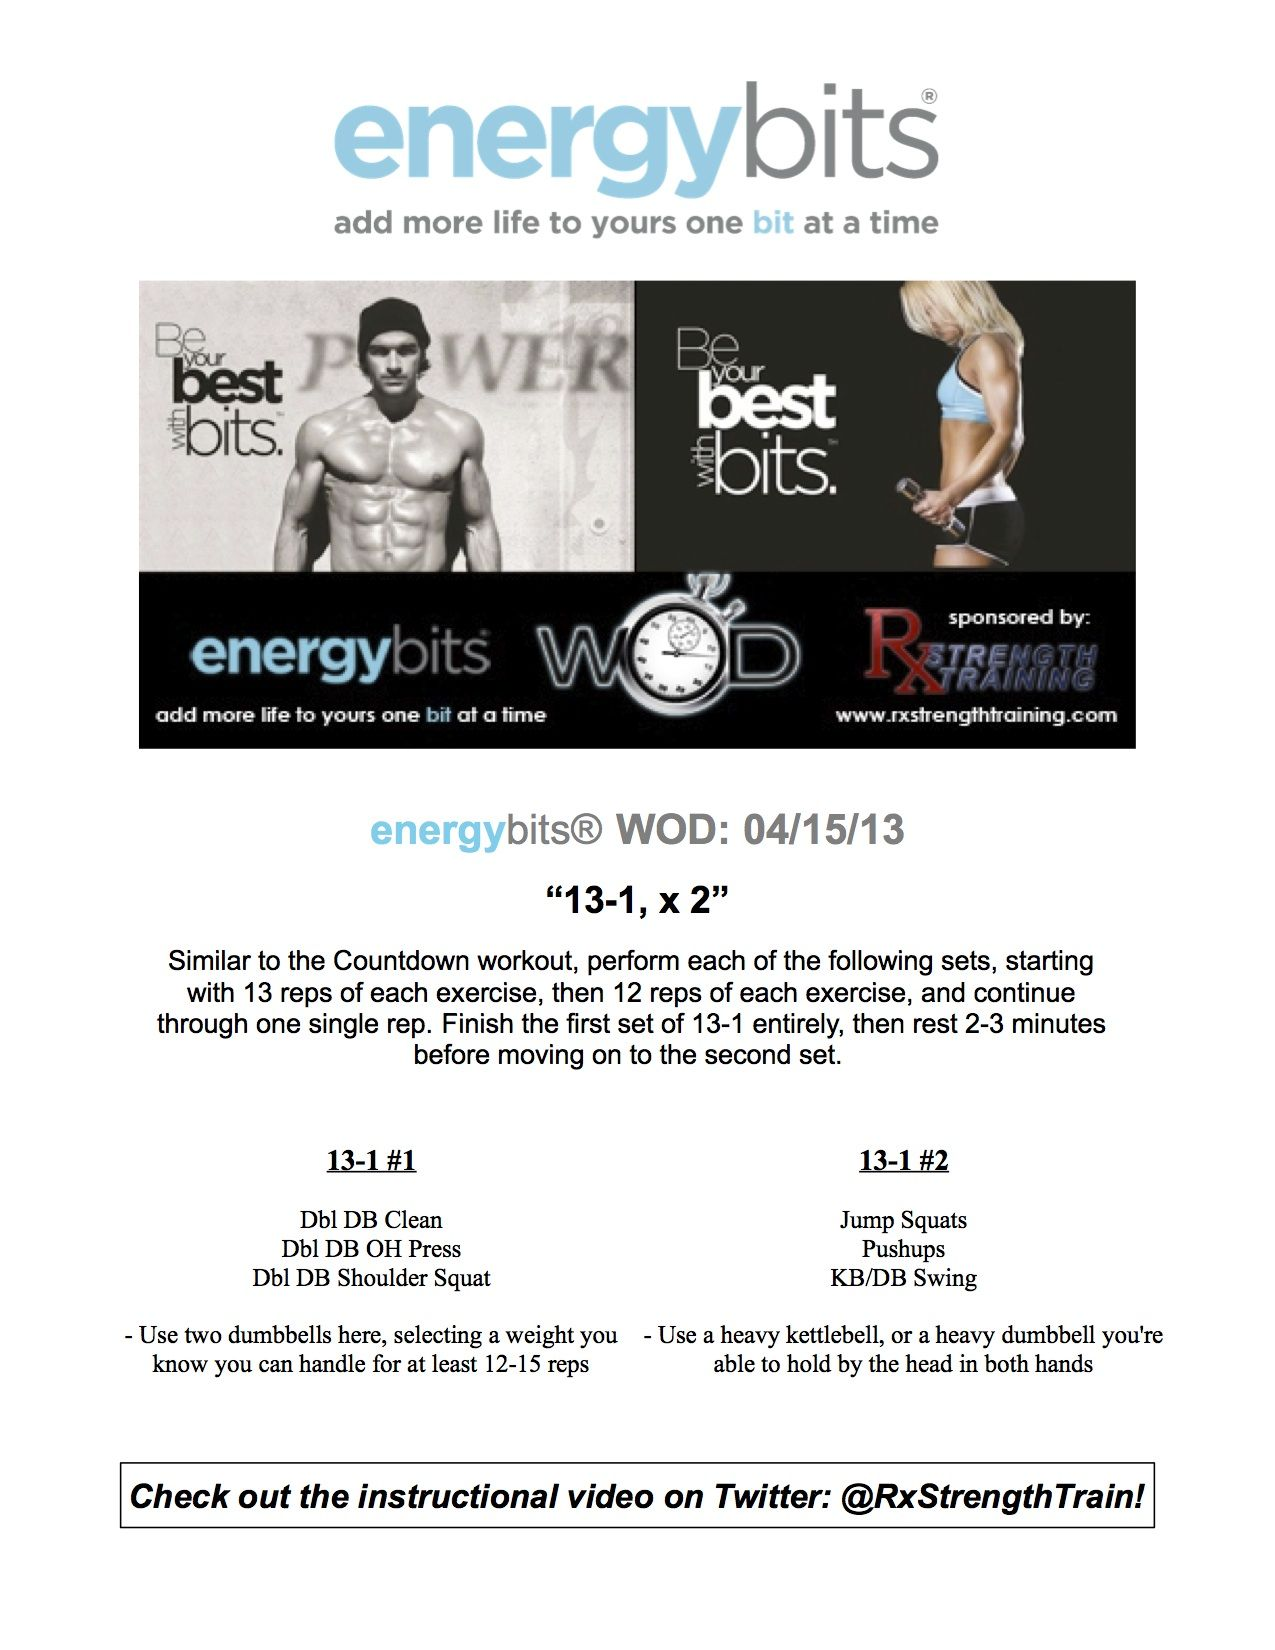 @ENERGYbits #WOD is up! Check it out here and be sure to let us know how you do! Contact Jeff @Rx Strength Training® with any questions!